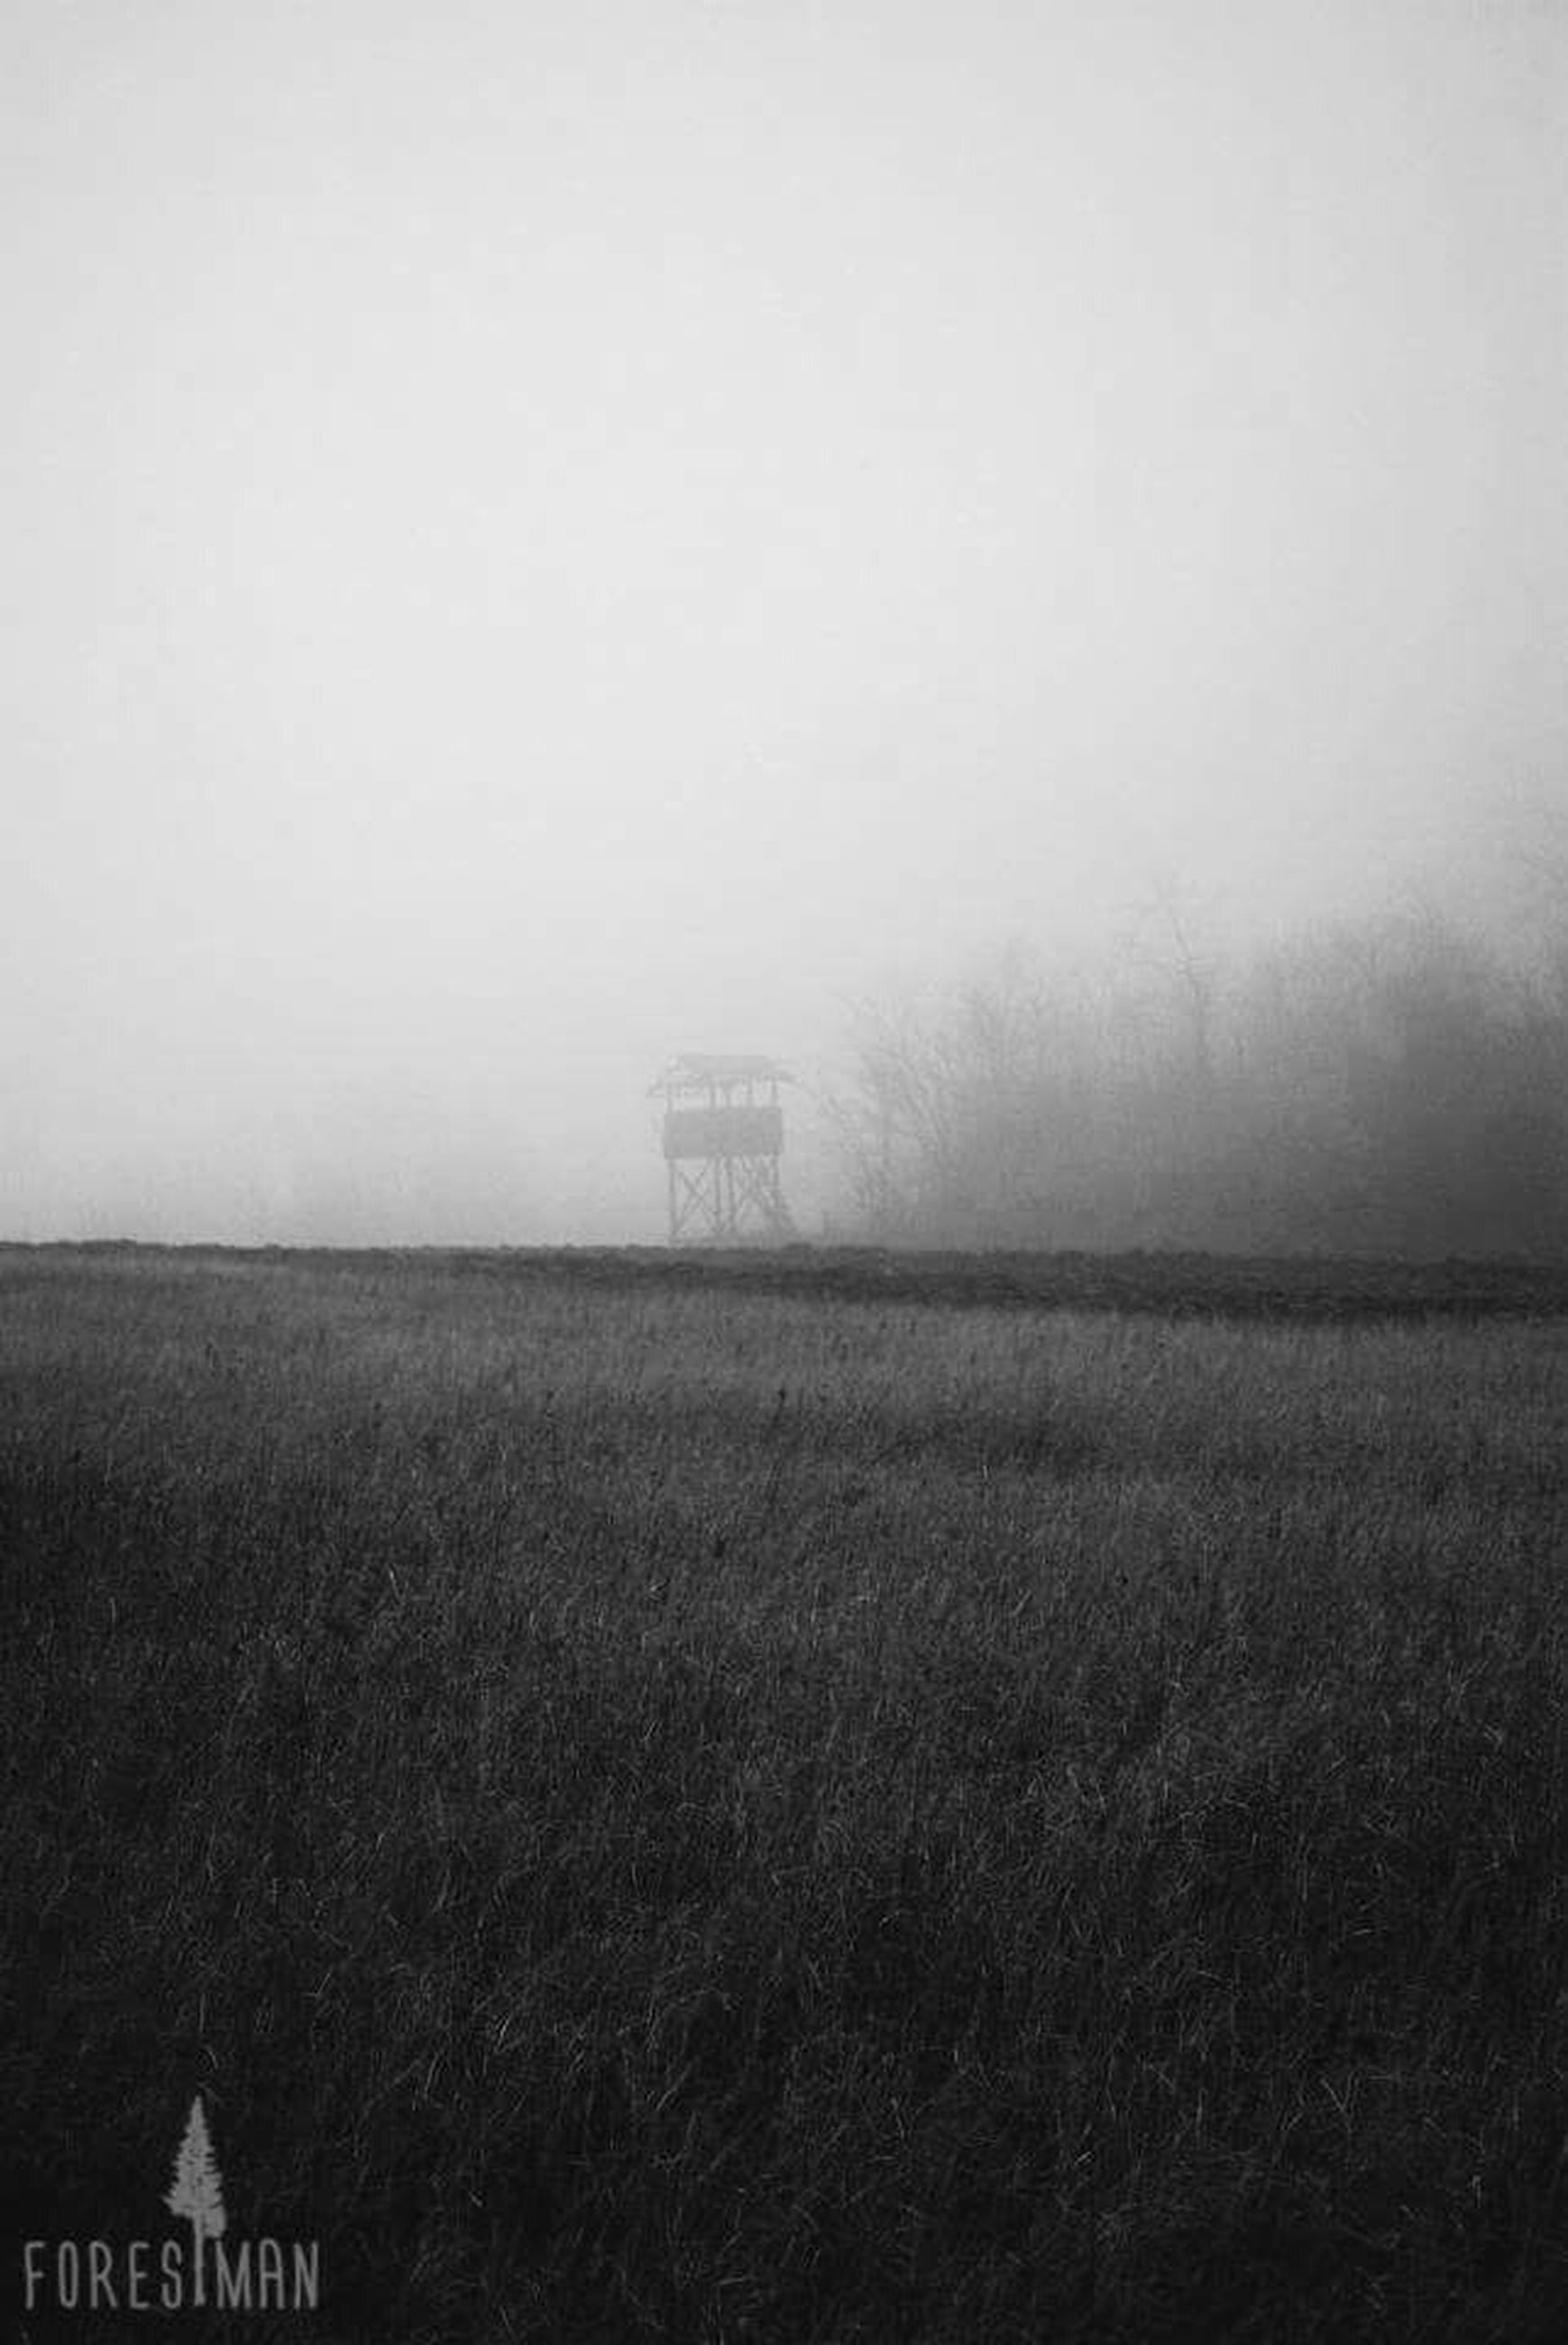 field, fog, copy space, landscape, foggy, grass, built structure, tranquil scene, tranquility, weather, architecture, building exterior, nature, scenics, rural scene, sky, grassy, beauty in nature, day